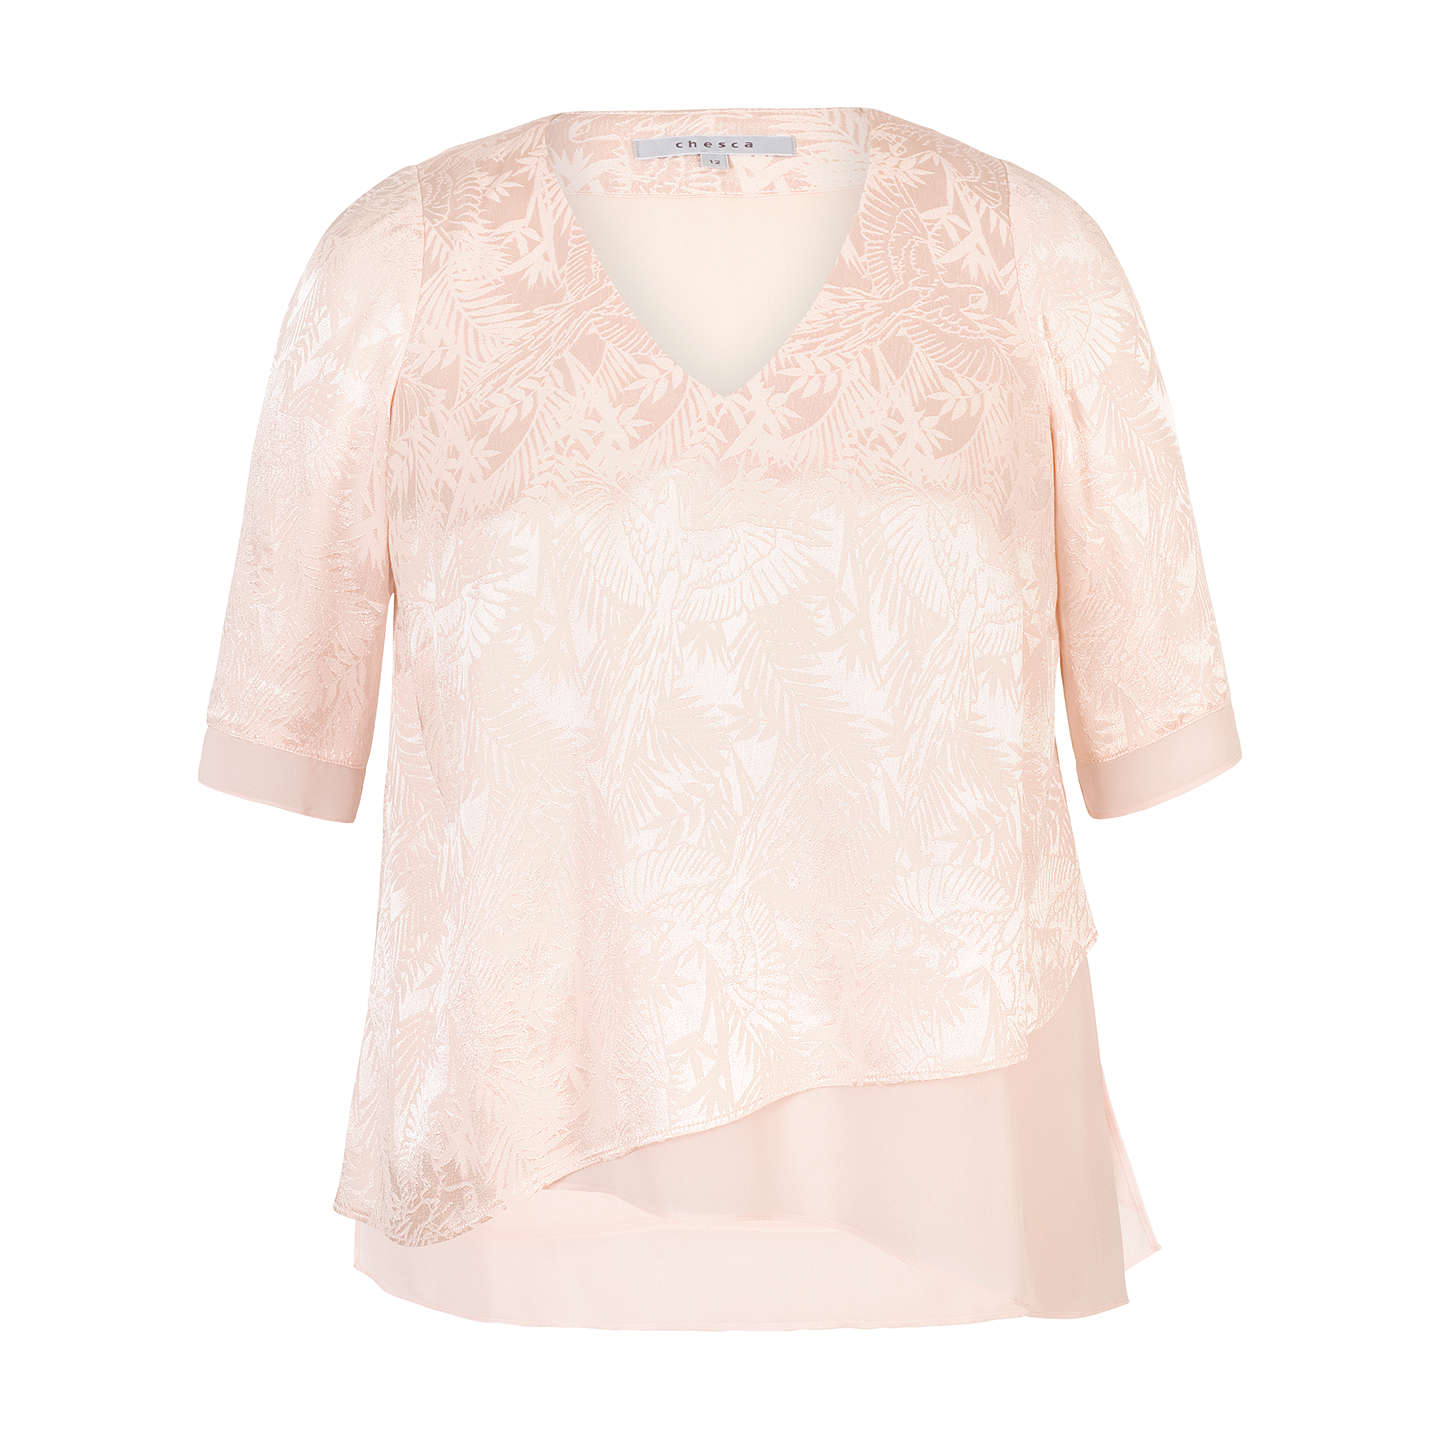 BuyChesca Leaf Jacquard Layered Tunic, Blush, 14 Online at johnlewis.com